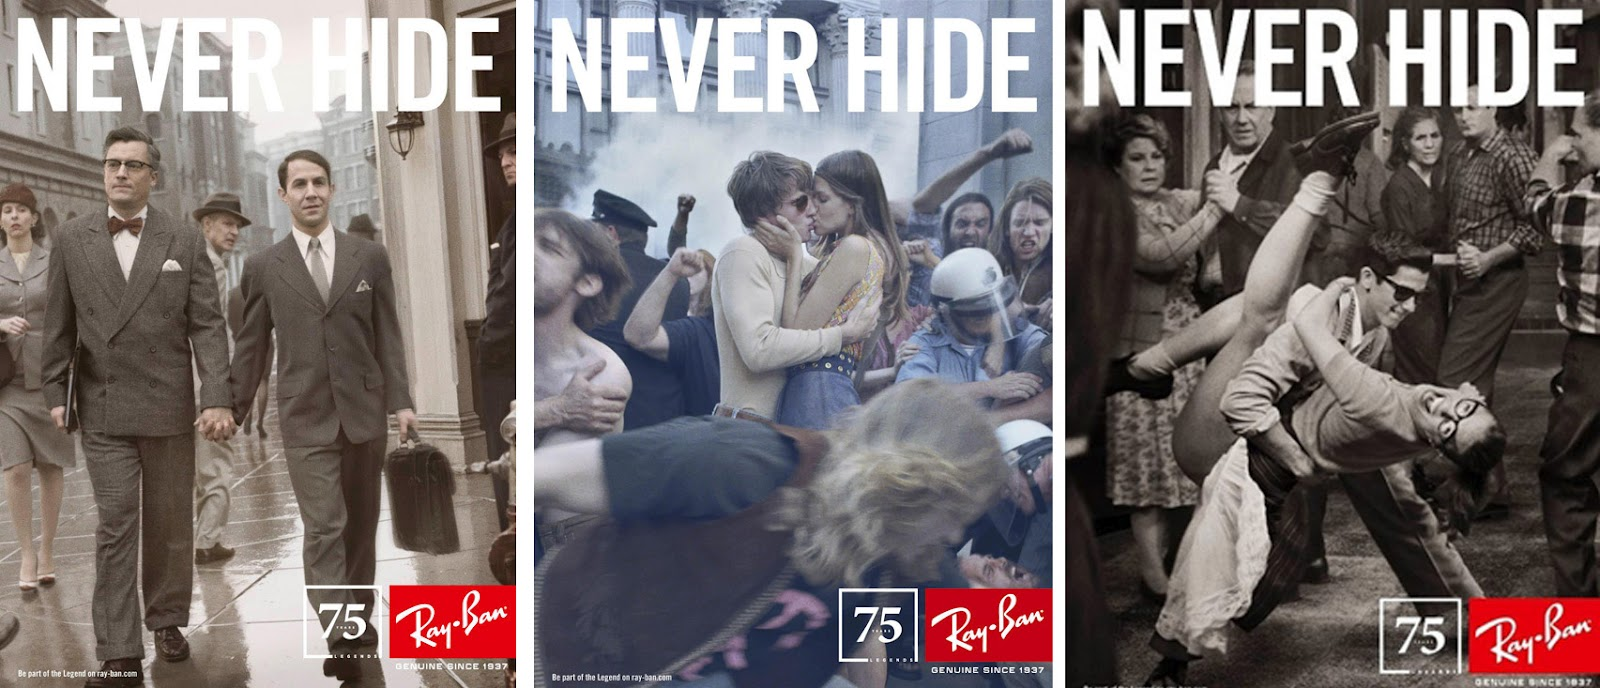 241e0a8715 Ray Ban Never Hide Ad Analysis « Heritage Malta